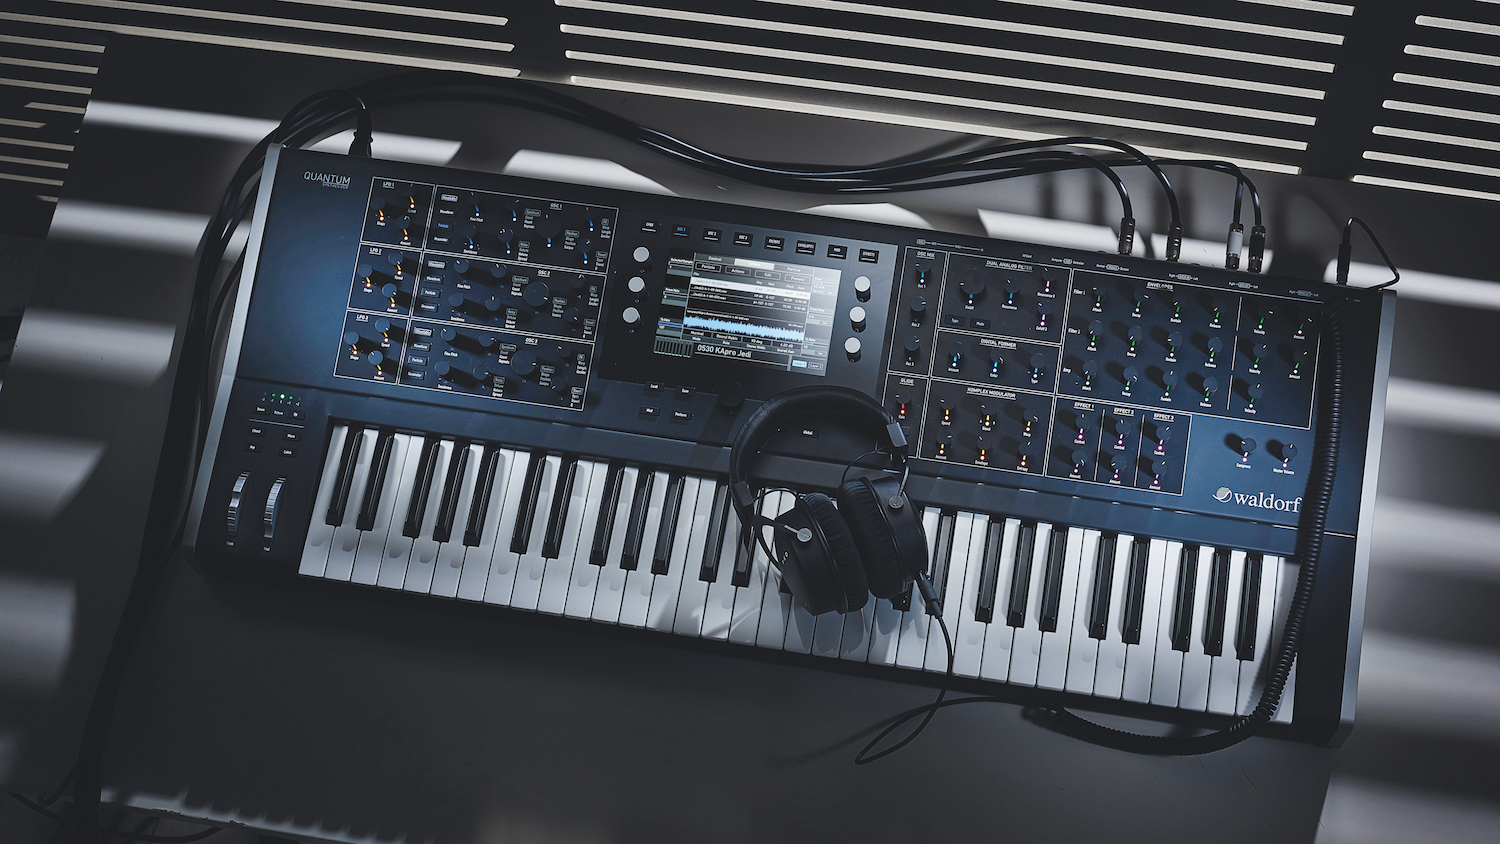 Best Vst Synths 2021 The 18 best synthesizers 2020: top keyboards, modules and semi